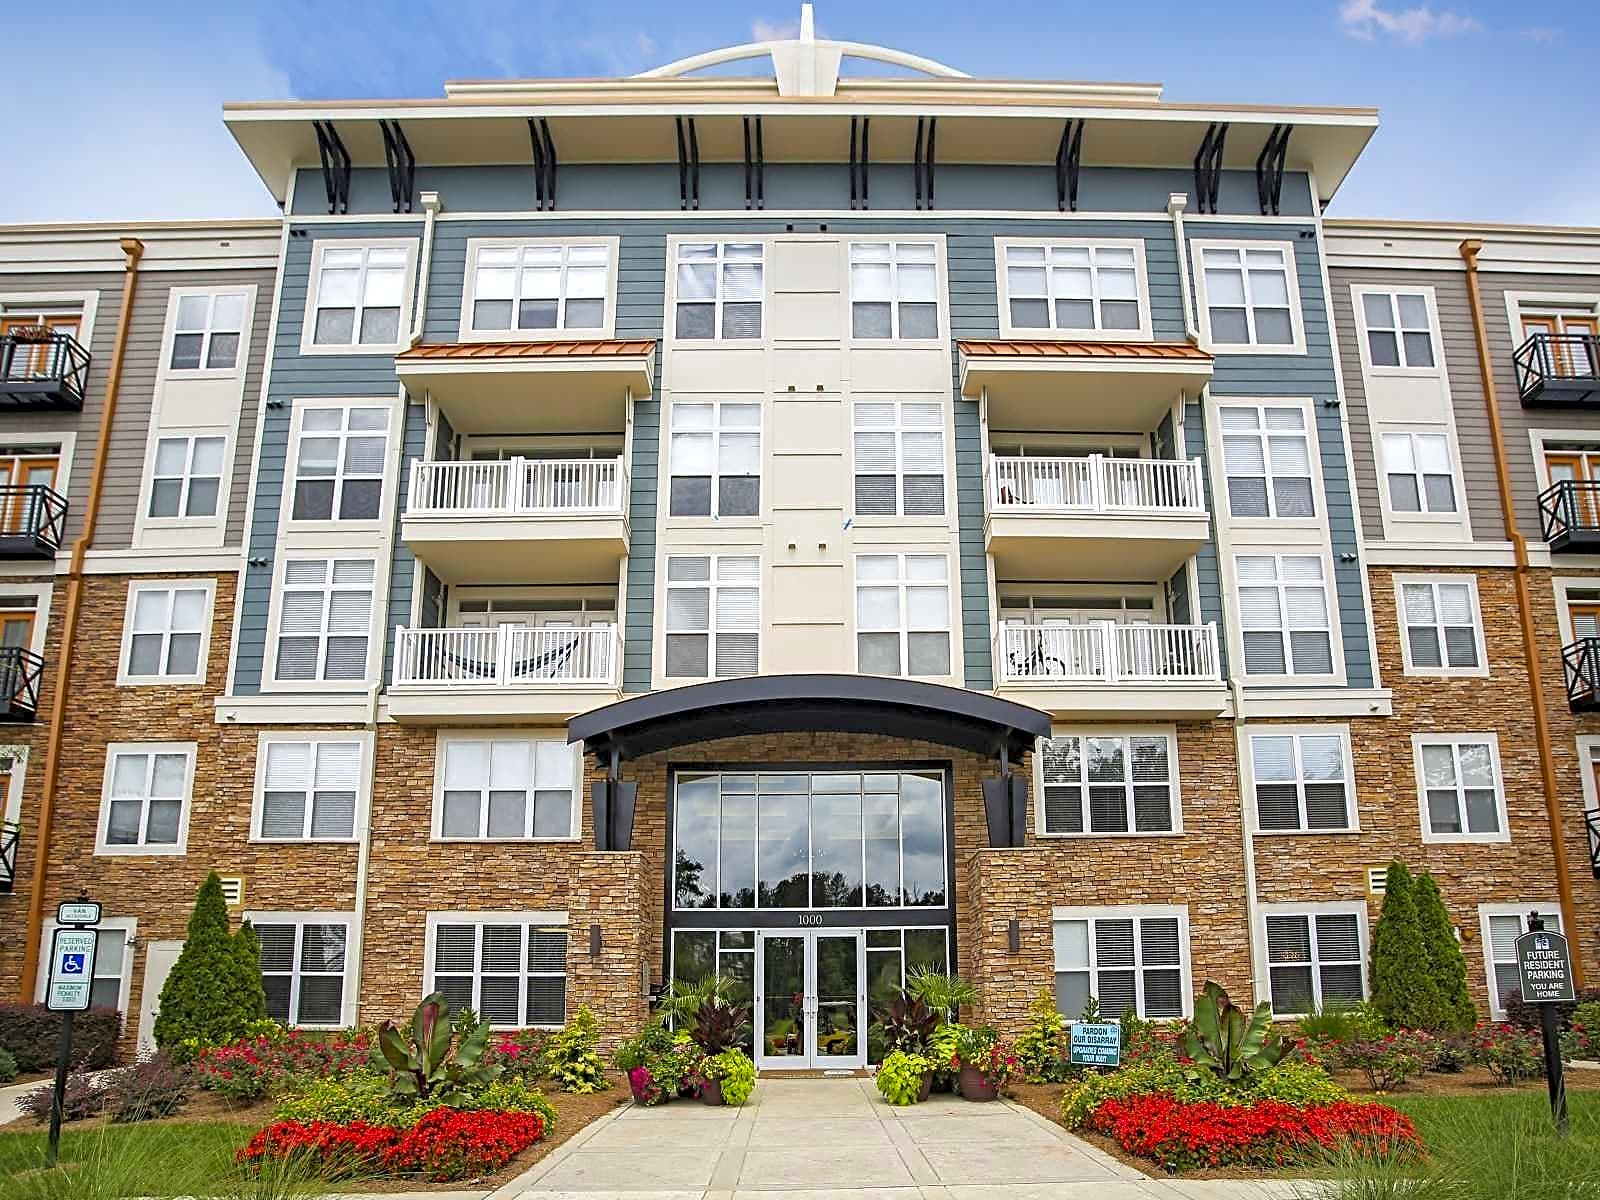 Apartments At Weston Lakeside Cary Nc 27513 Math Wallpaper Golden Find Free HD for Desktop [pastnedes.tk]